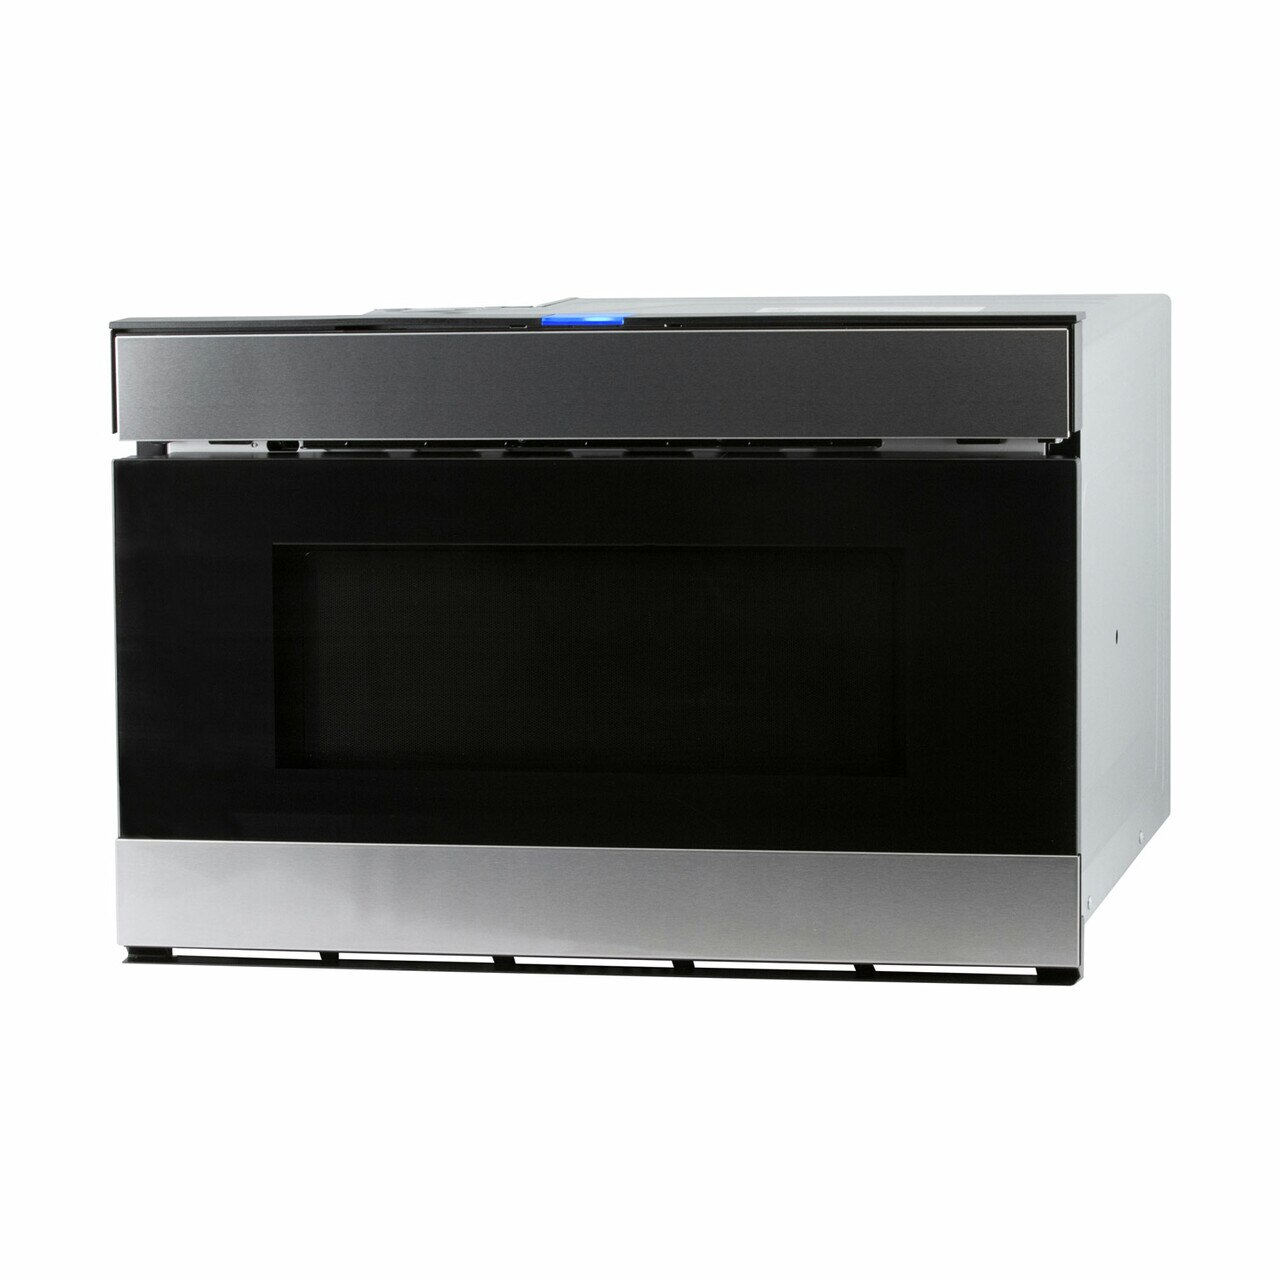 Sharp Easy Wave Open Microwave Drawer (SMD2480CS) – right angle view